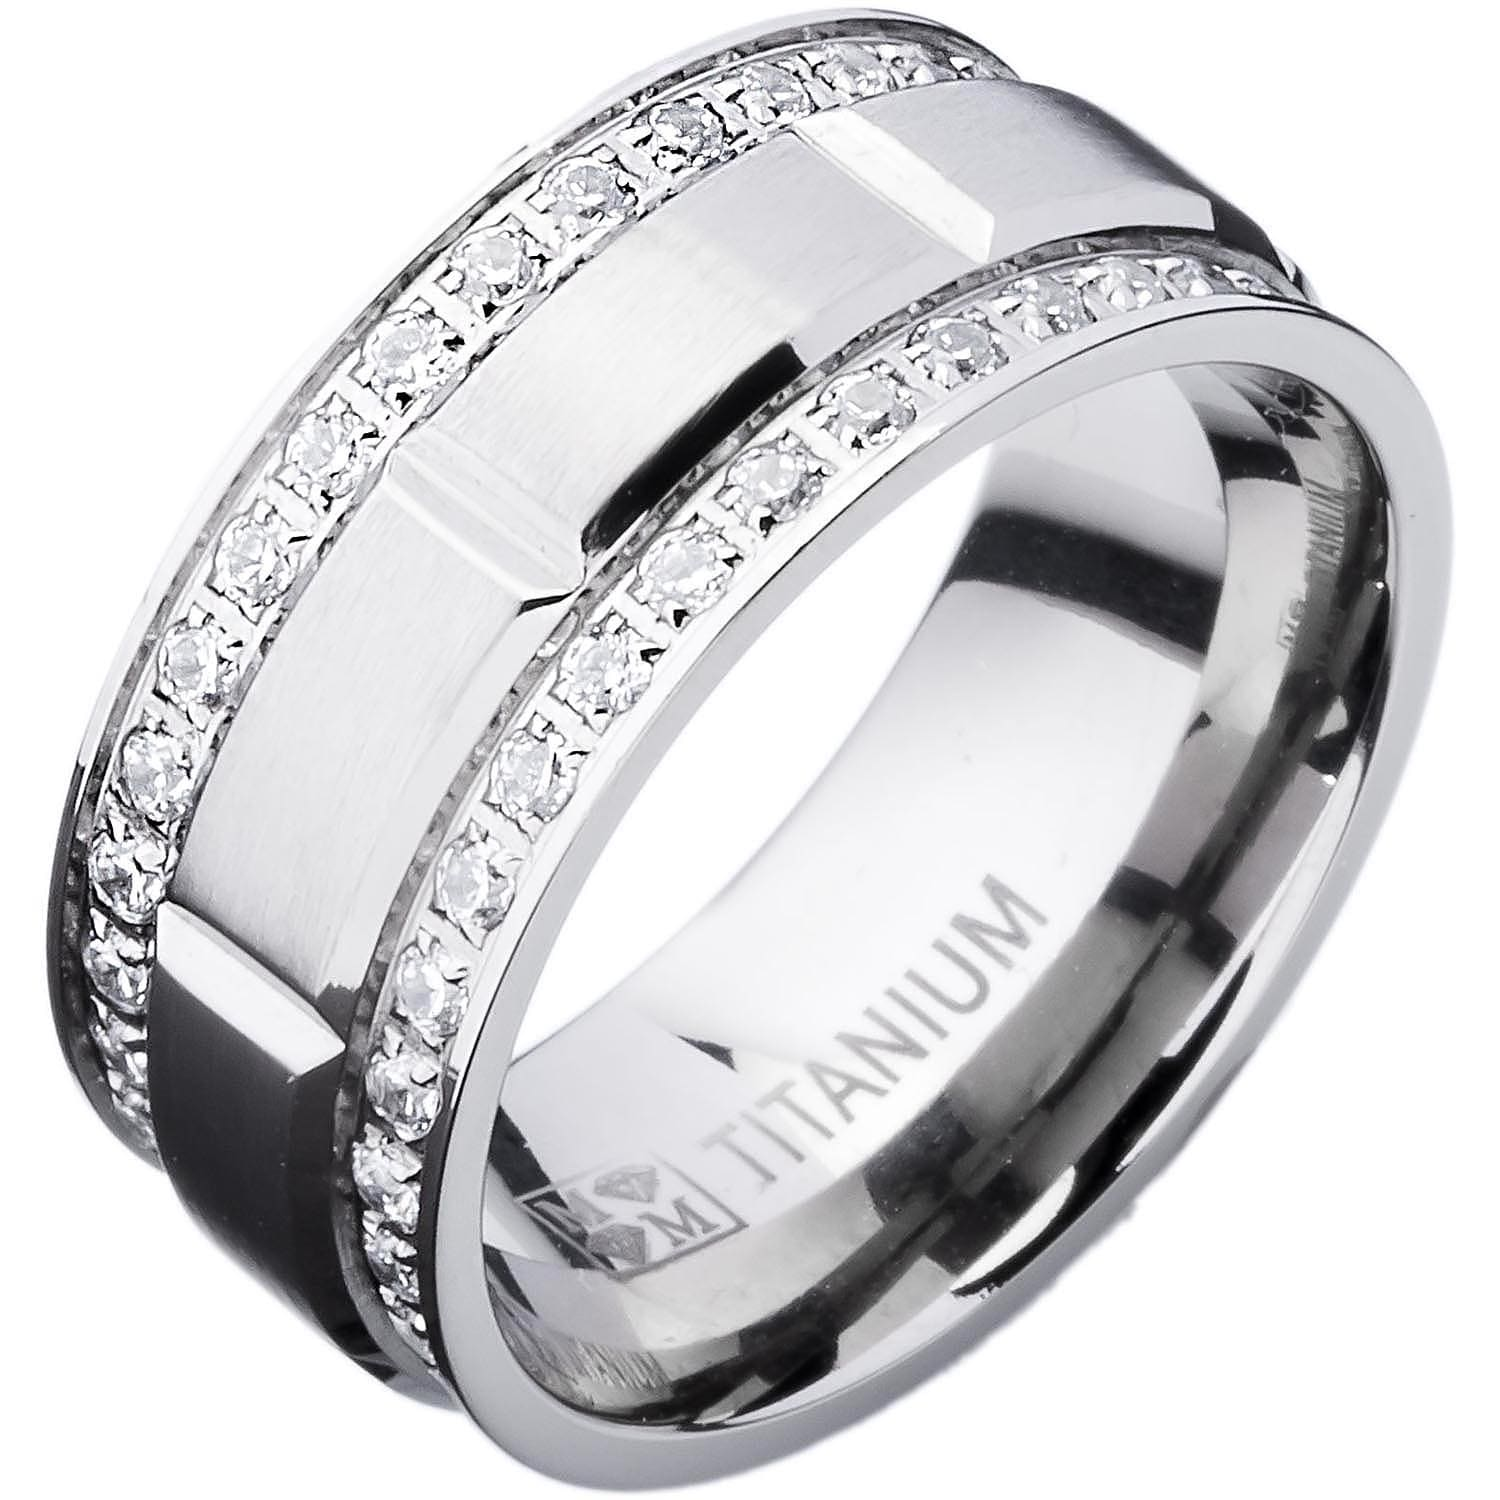 besttohave ring image masculine carbide jewellery tungsten and wedding band rings proof engagement mens scratch